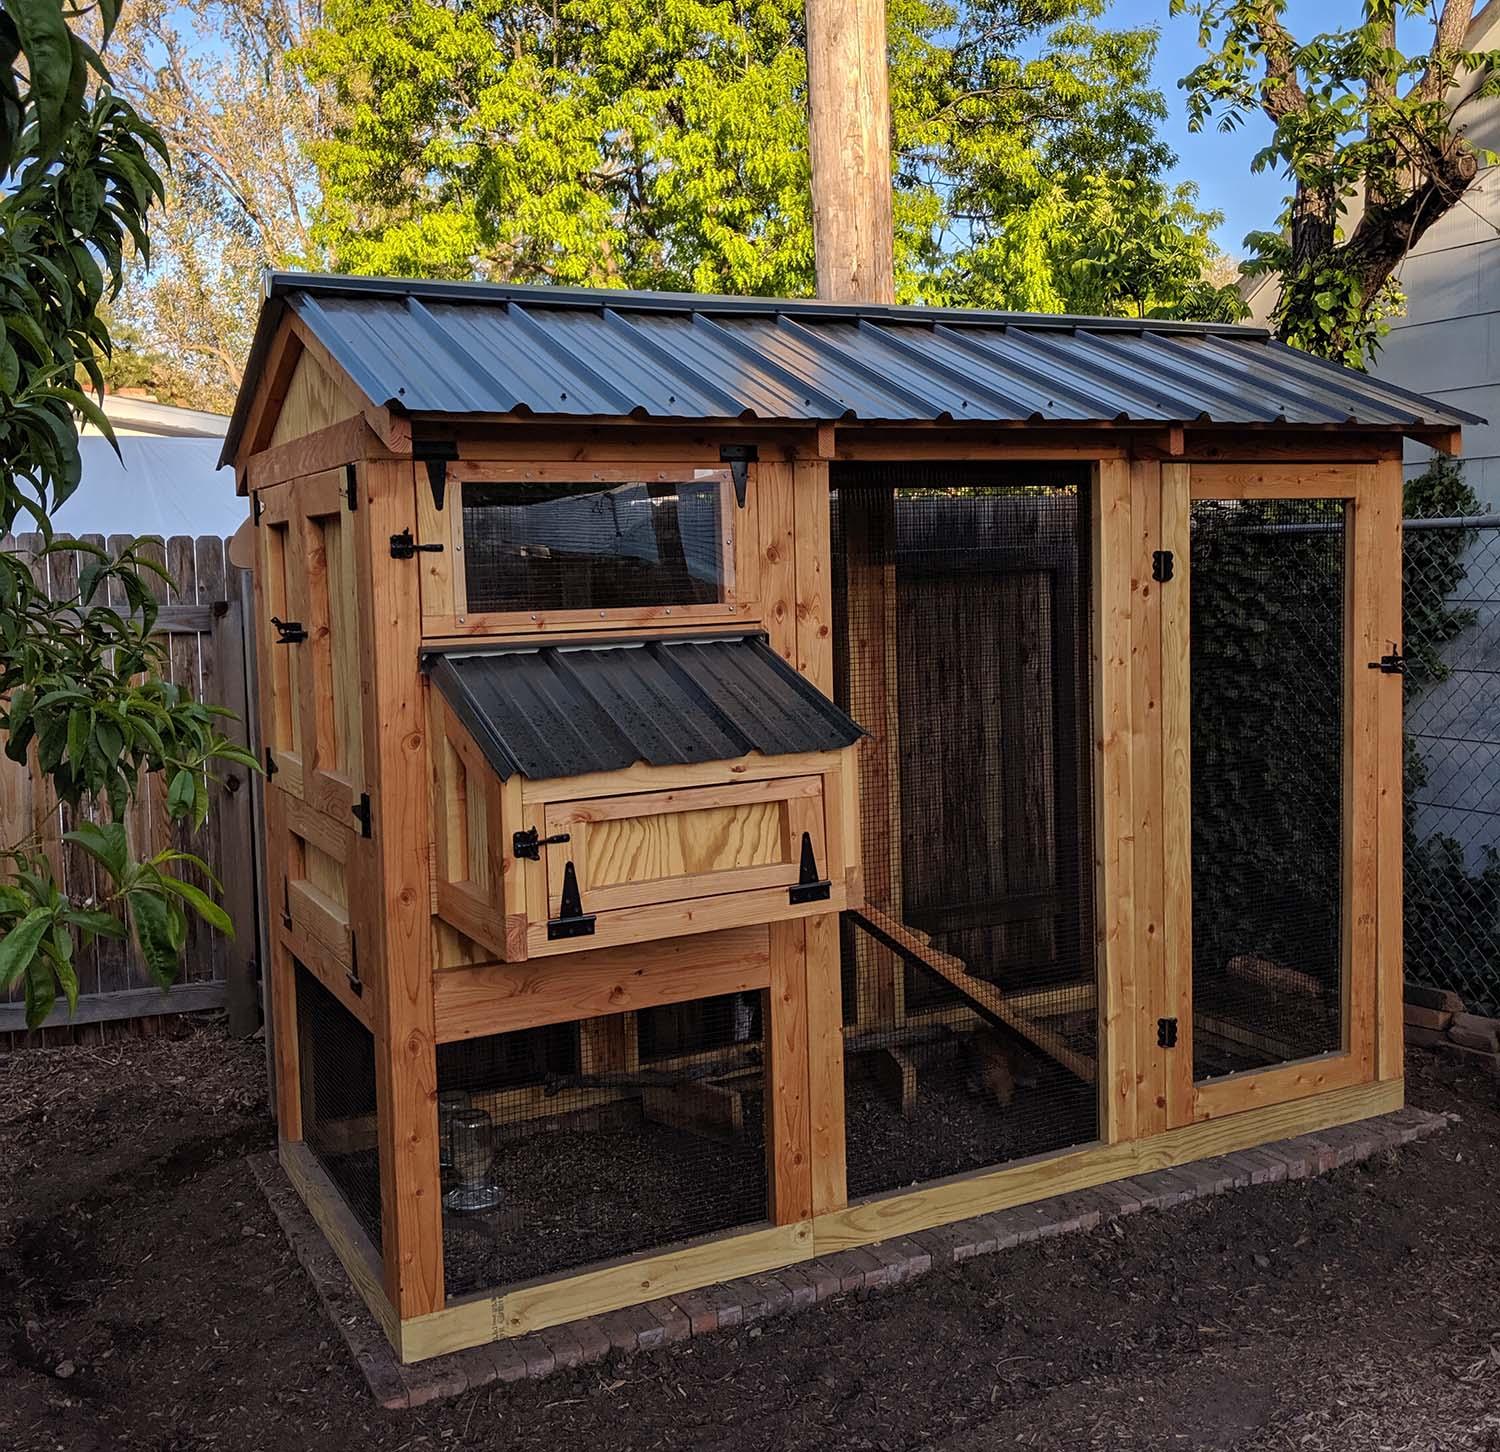 4′ x 9′ California Coop with 3′ x 4′ henhouse with black roof & hardware in Boise, Idaho